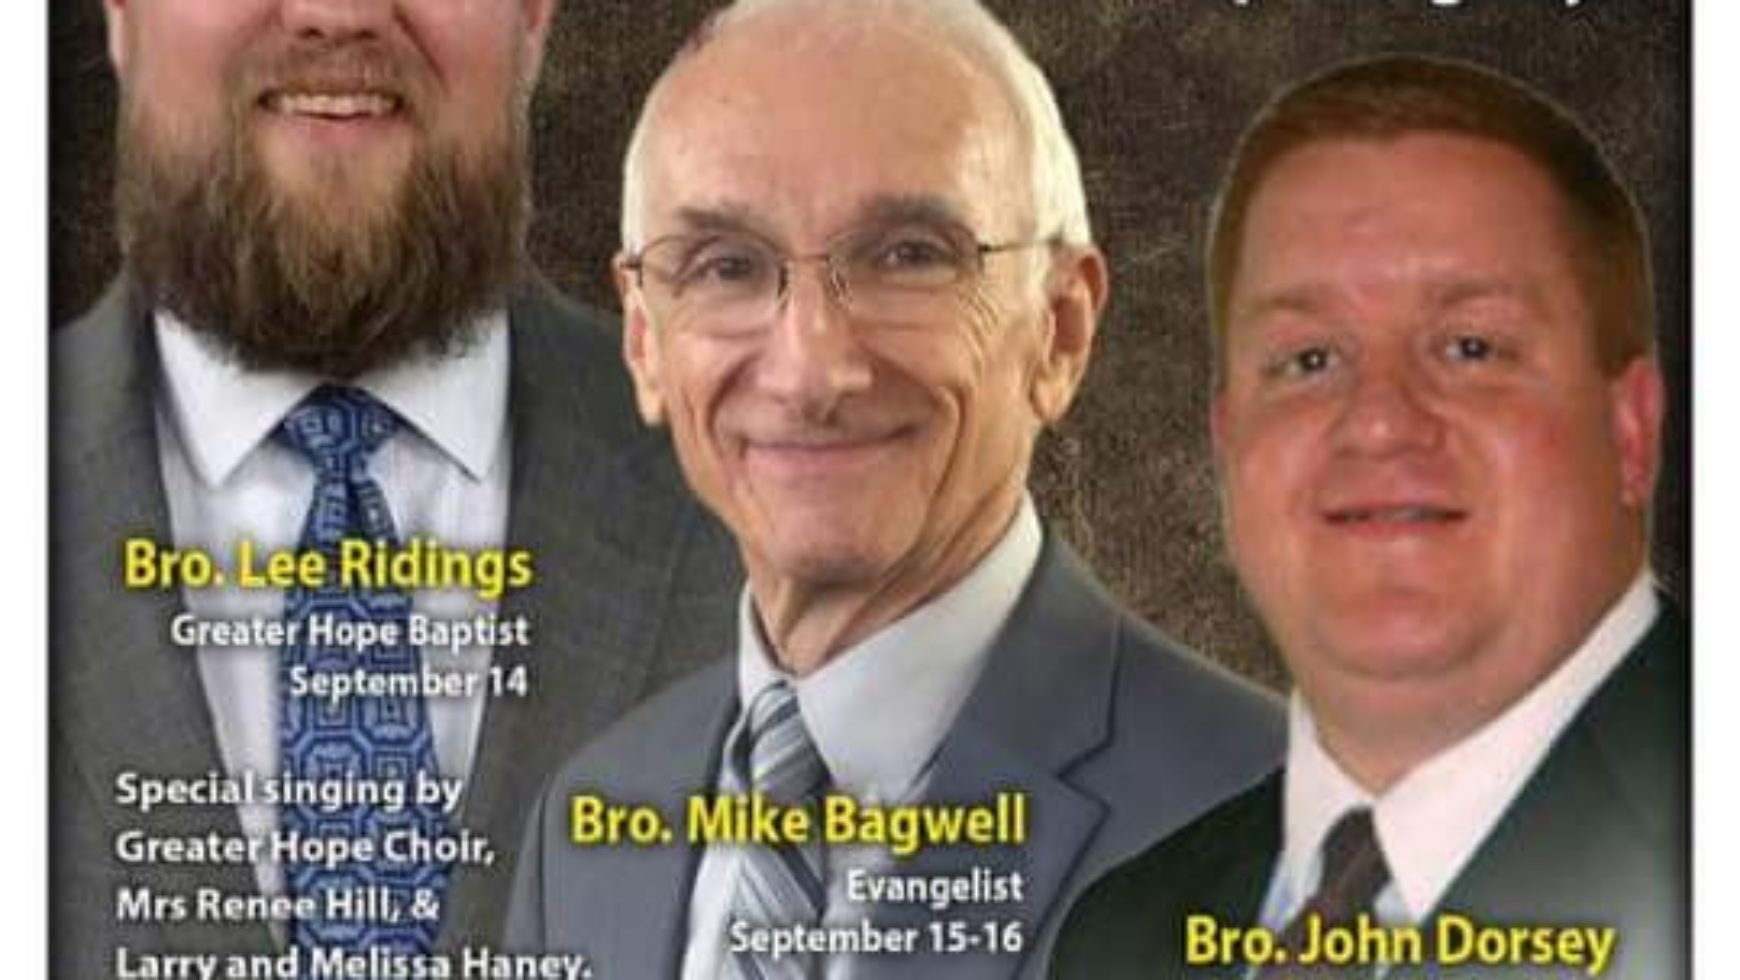 Area Meeting: Revival Services – New Brooklyn Baptist Church – Temple, GA